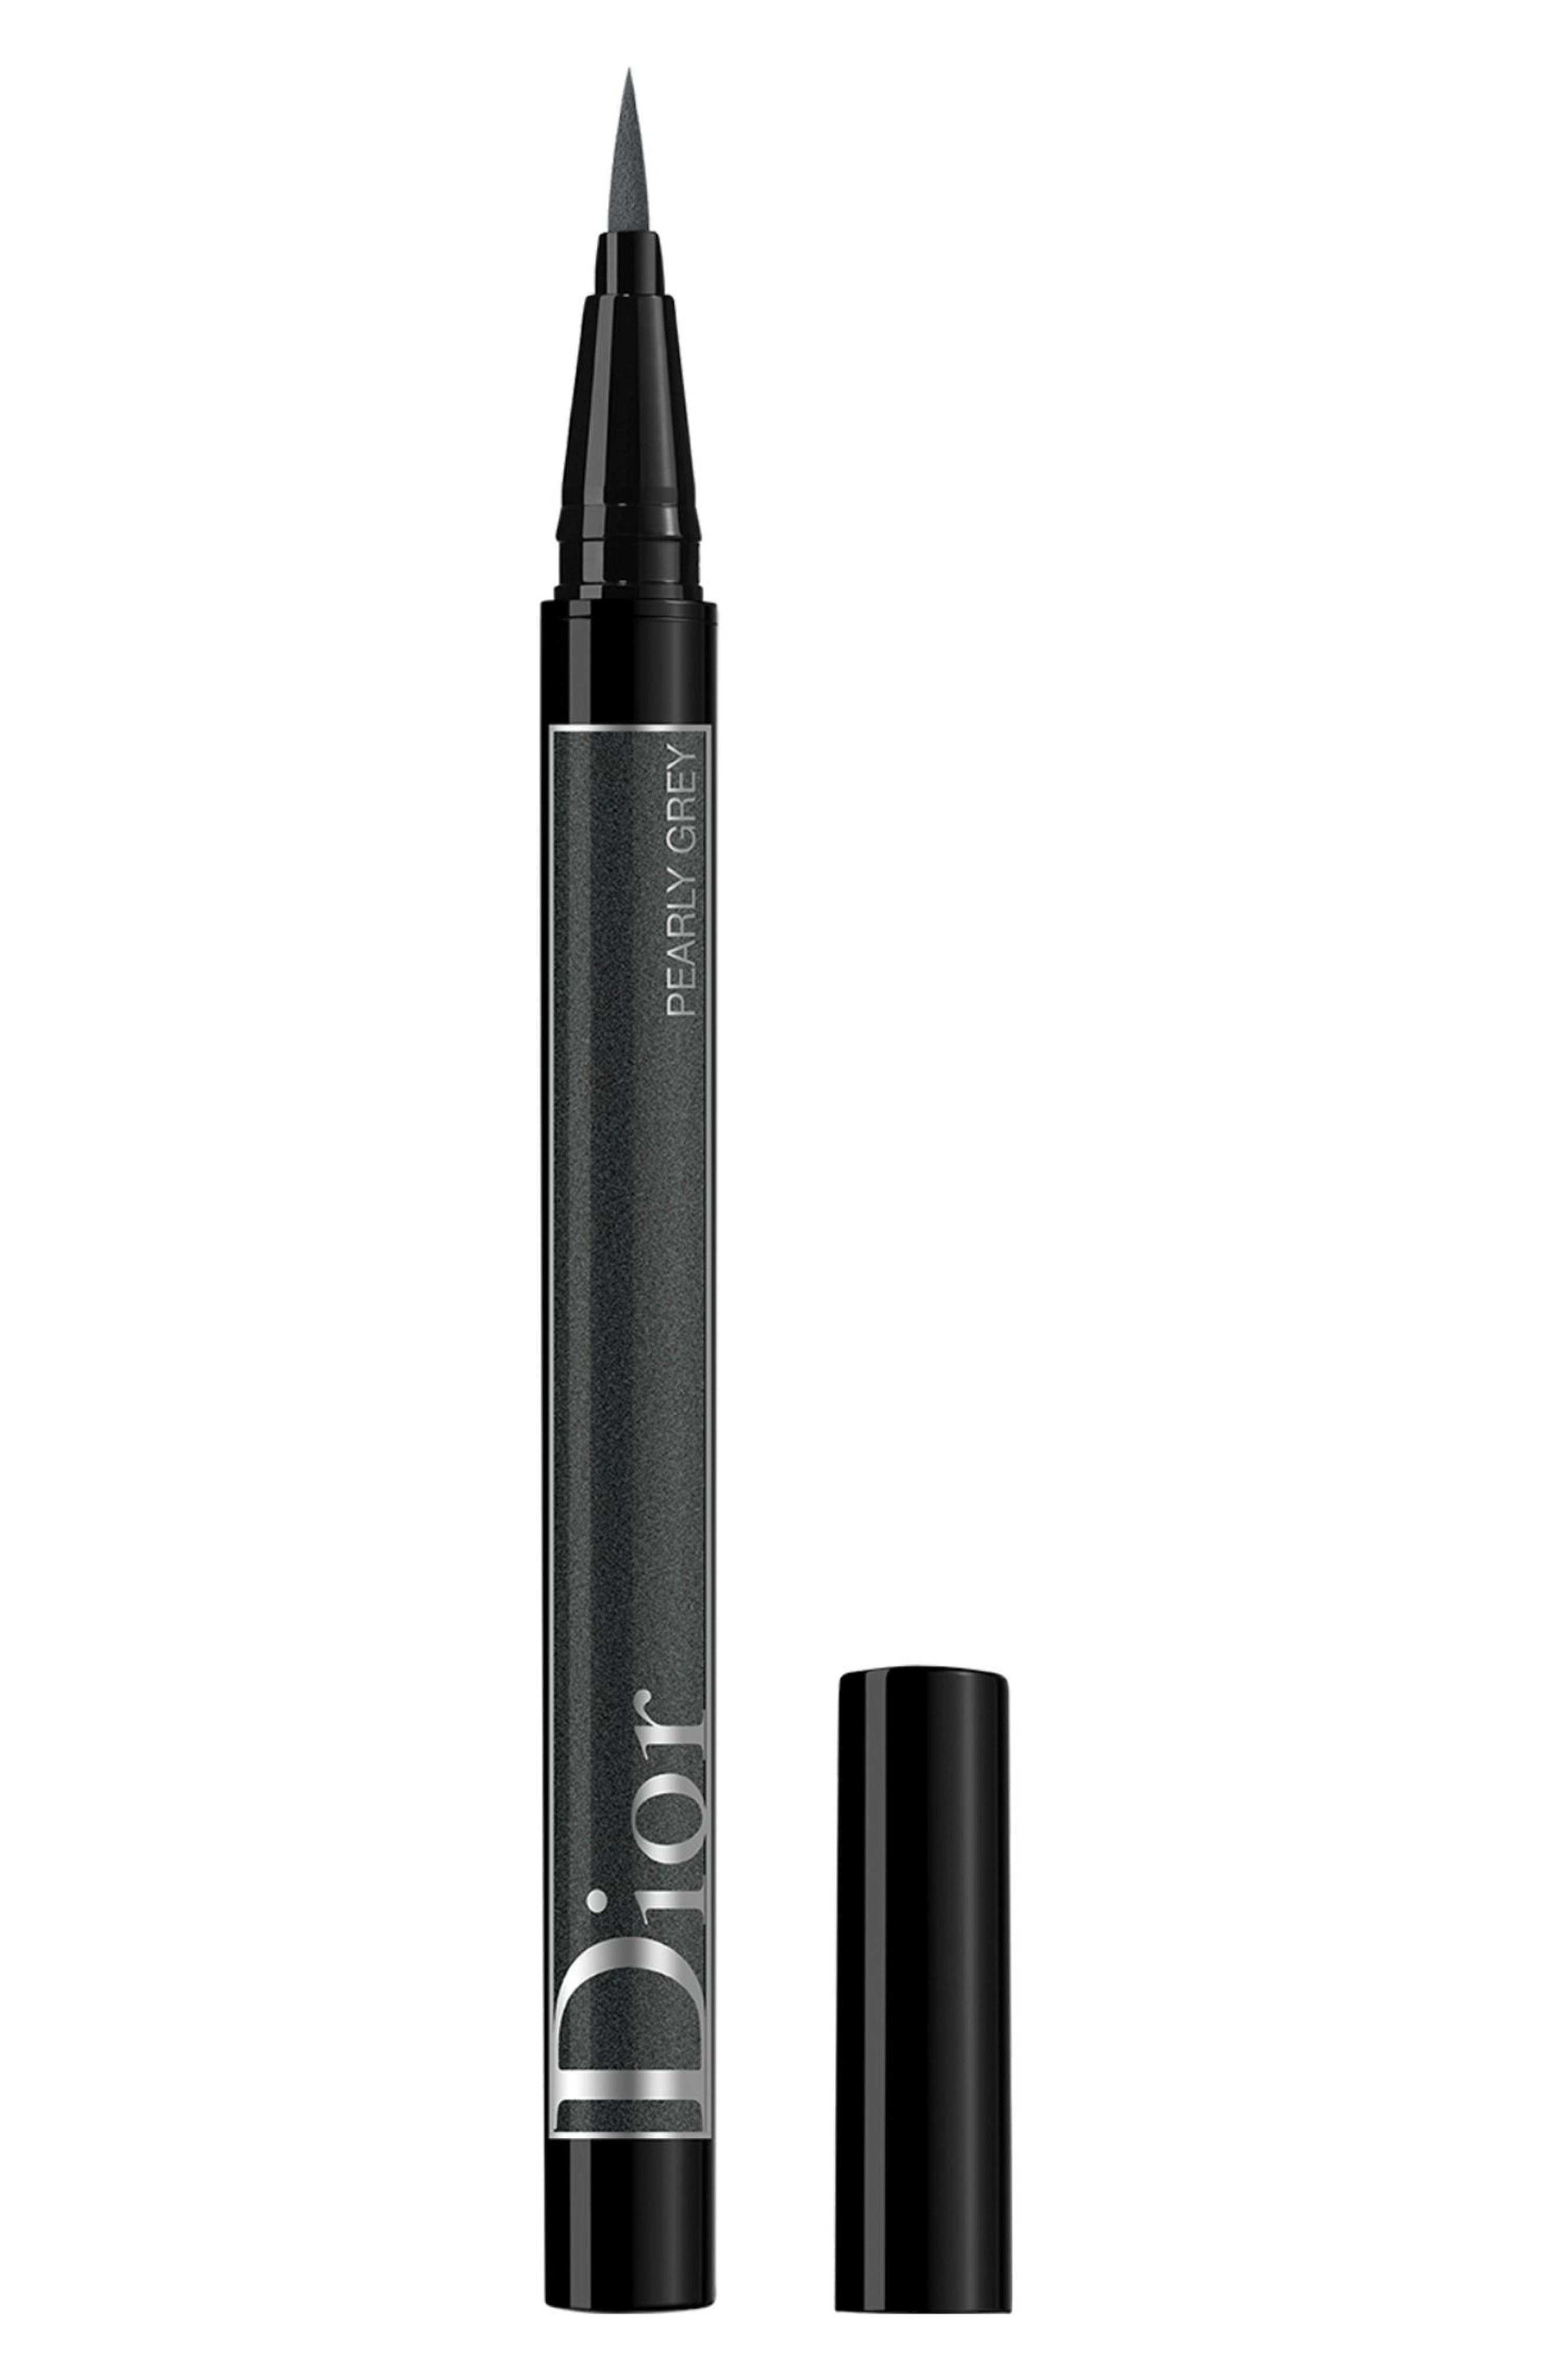 Dior Diorshow On Stage Eyeliner - 076 Pearly Black